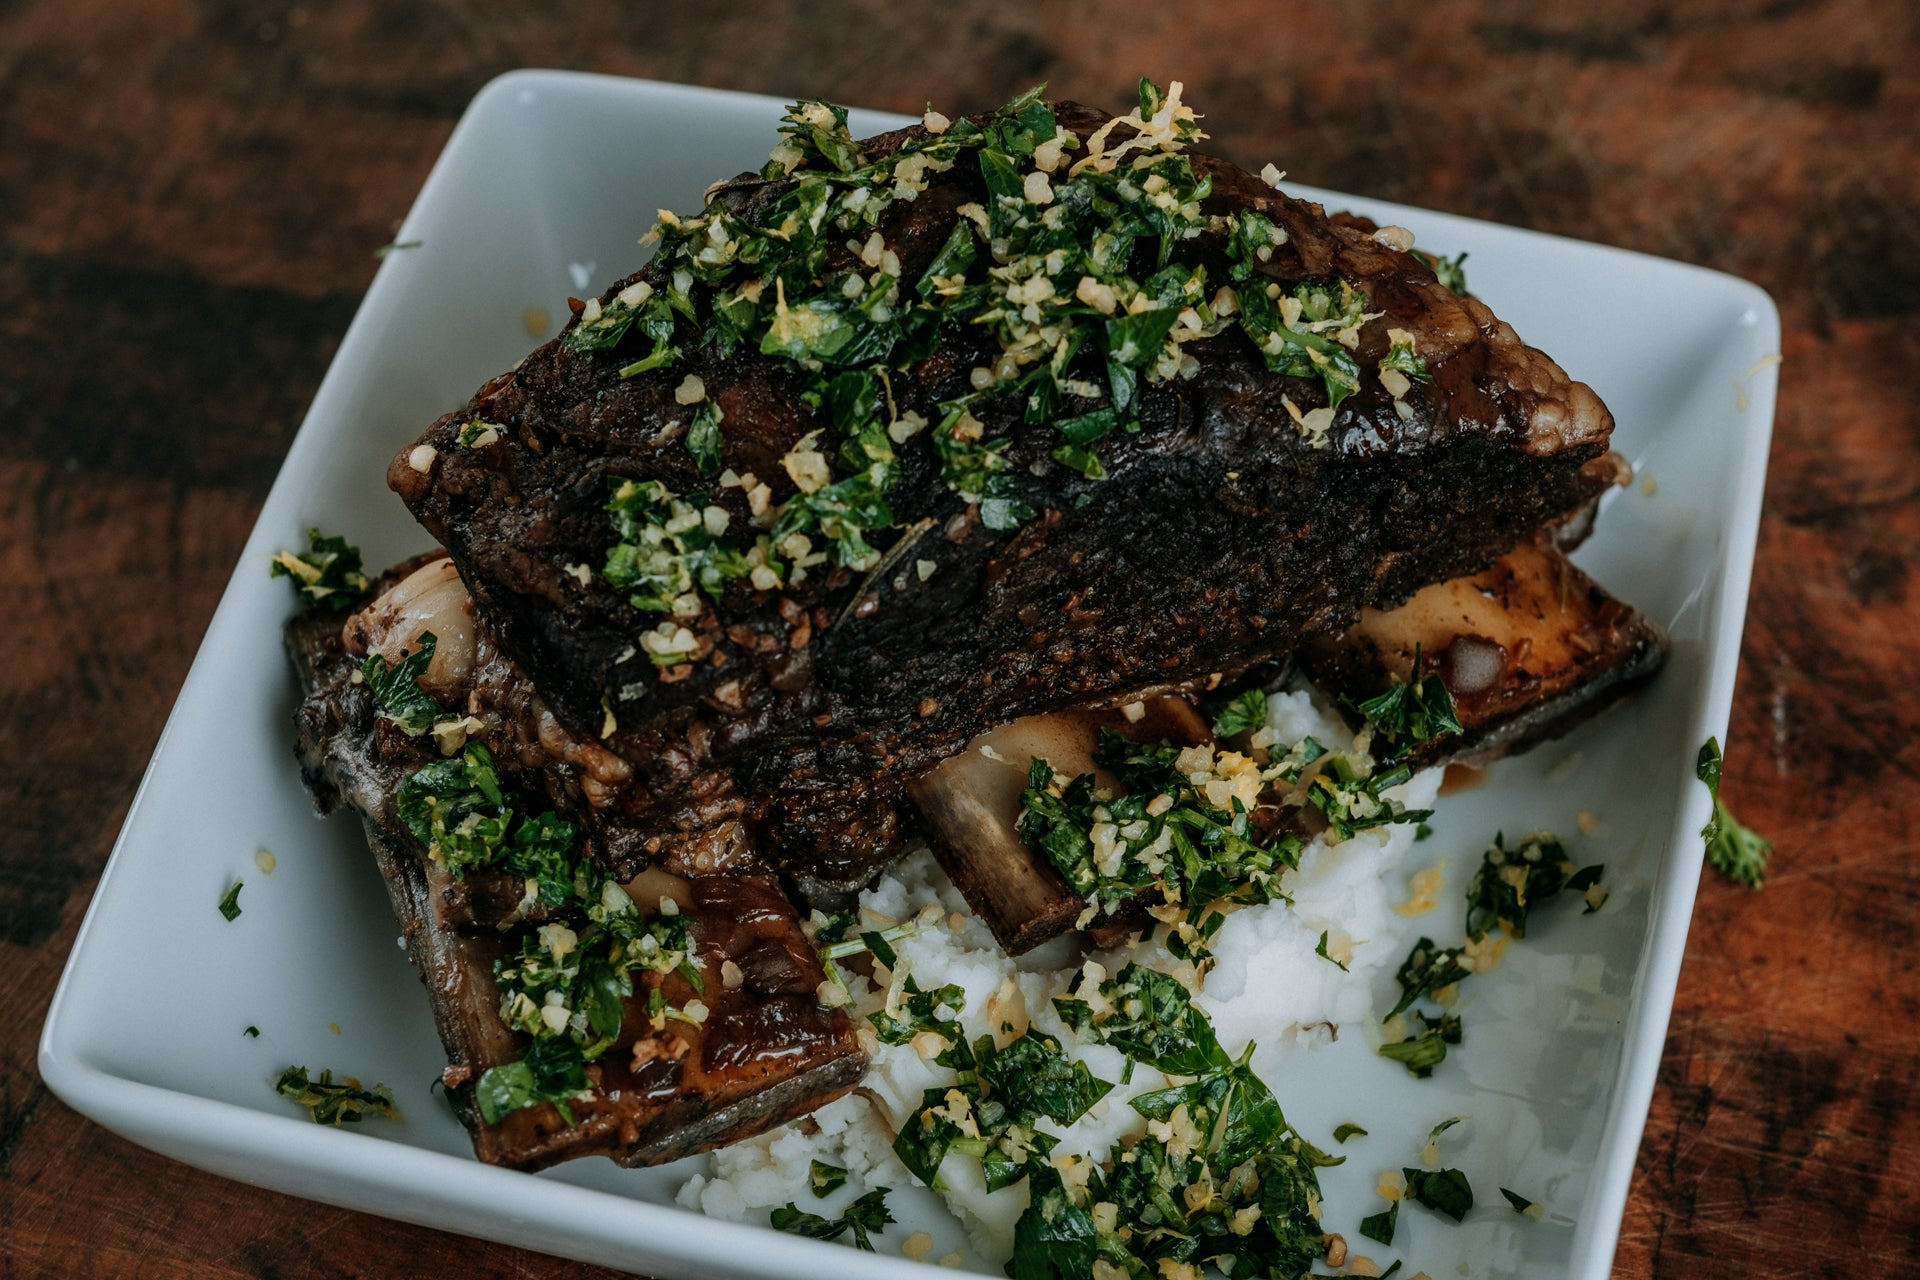 Braised Bone-In Beef Short Ribs